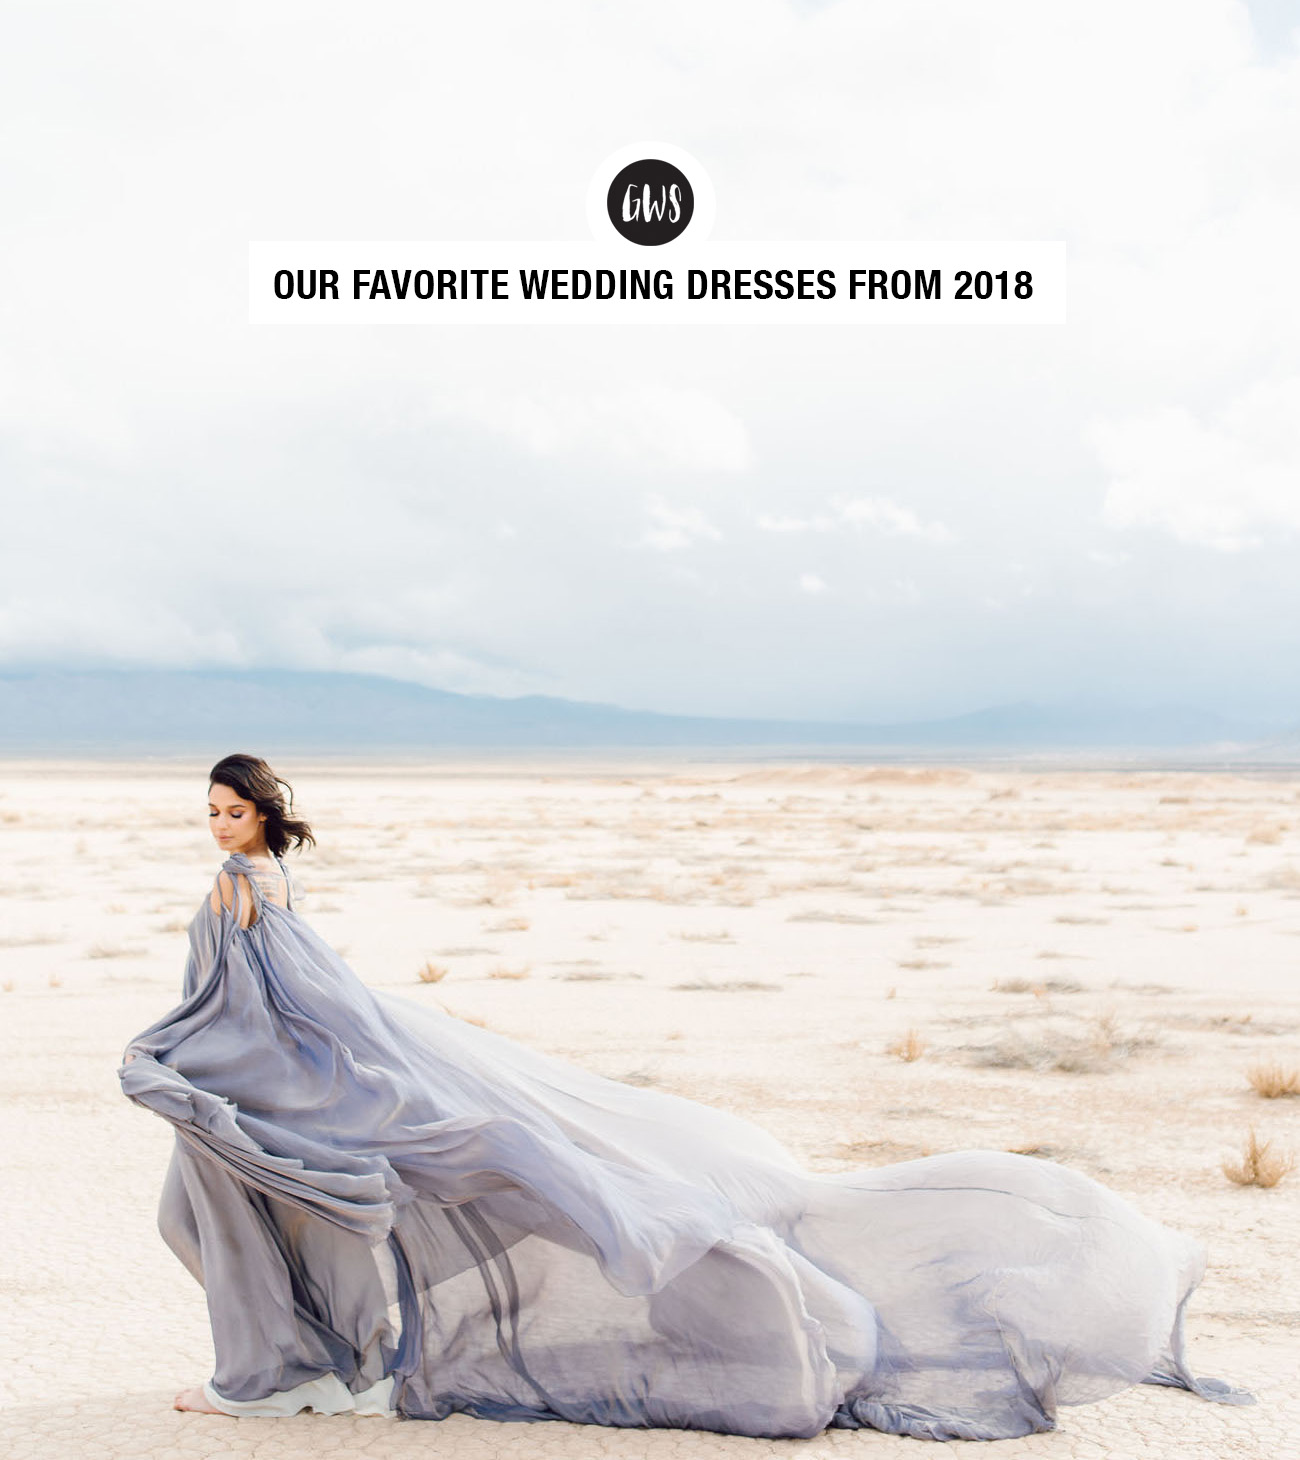 favorite wedding dresses from Green Wedding Shoes of 2018